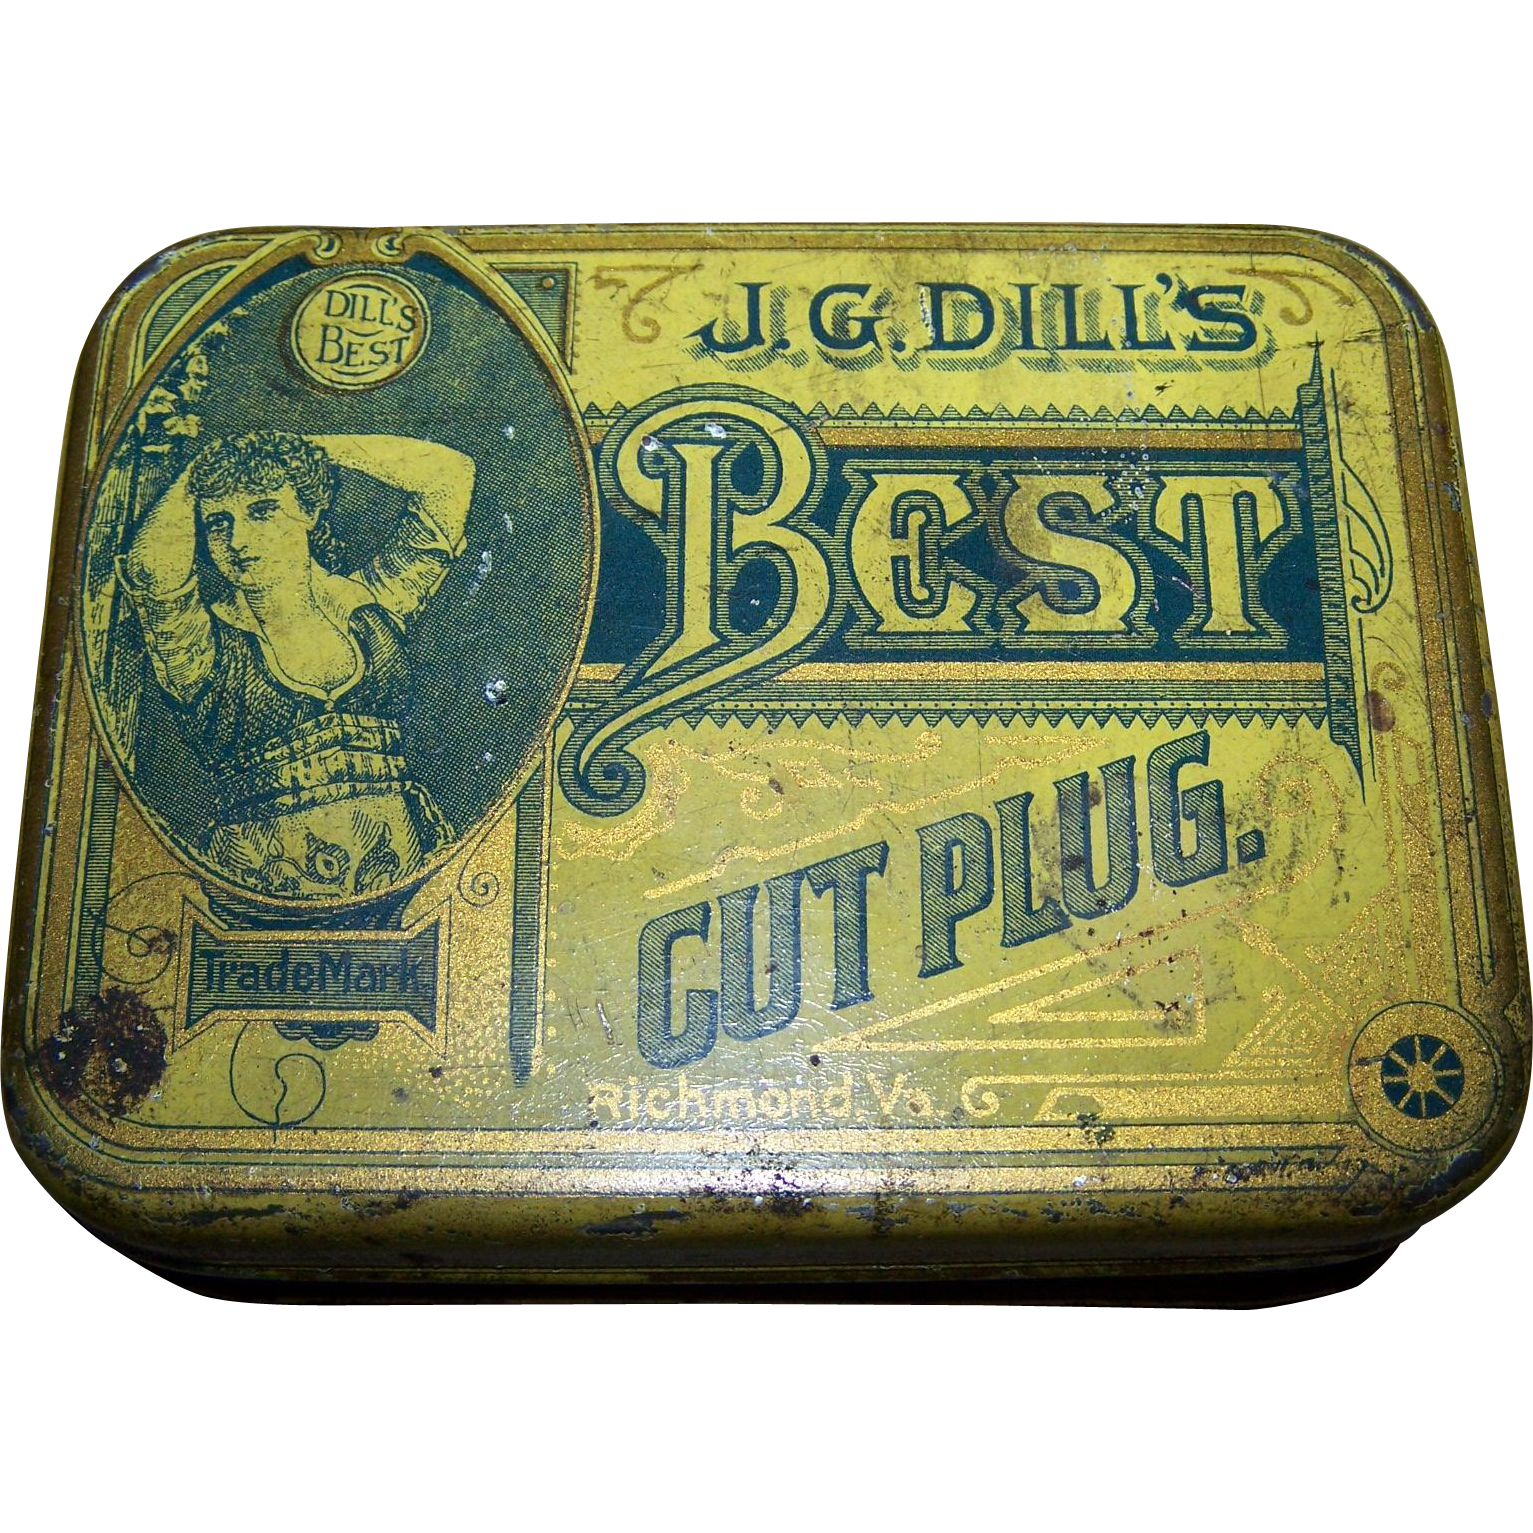 Vintage Advertising Tin Litho Box J.G. DIll's Best Cut Plug Tobacco